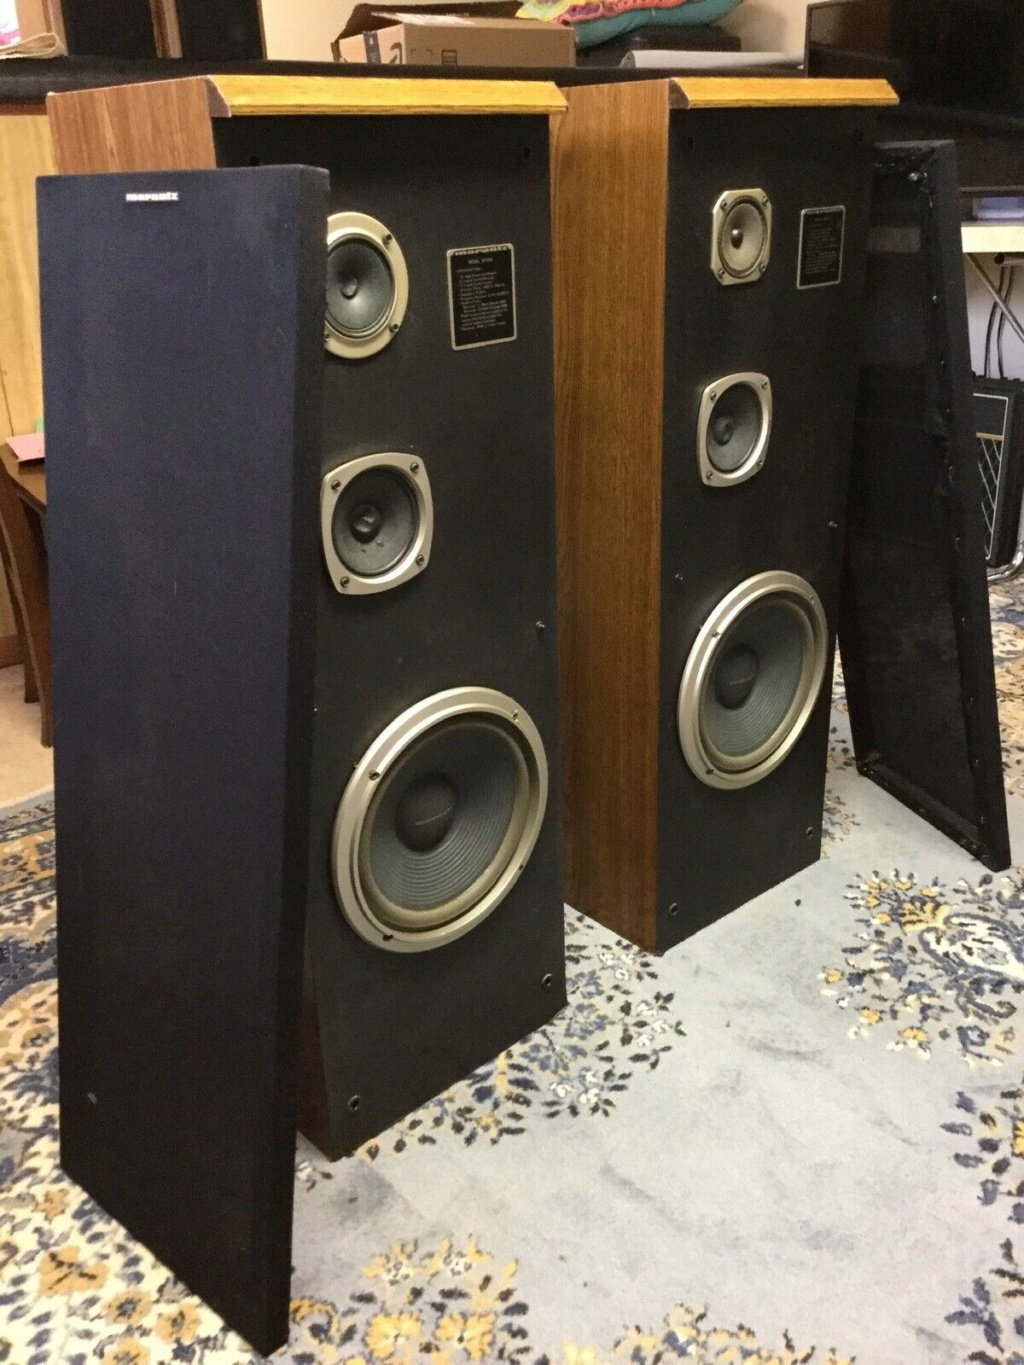 Which Speakers S-l16010